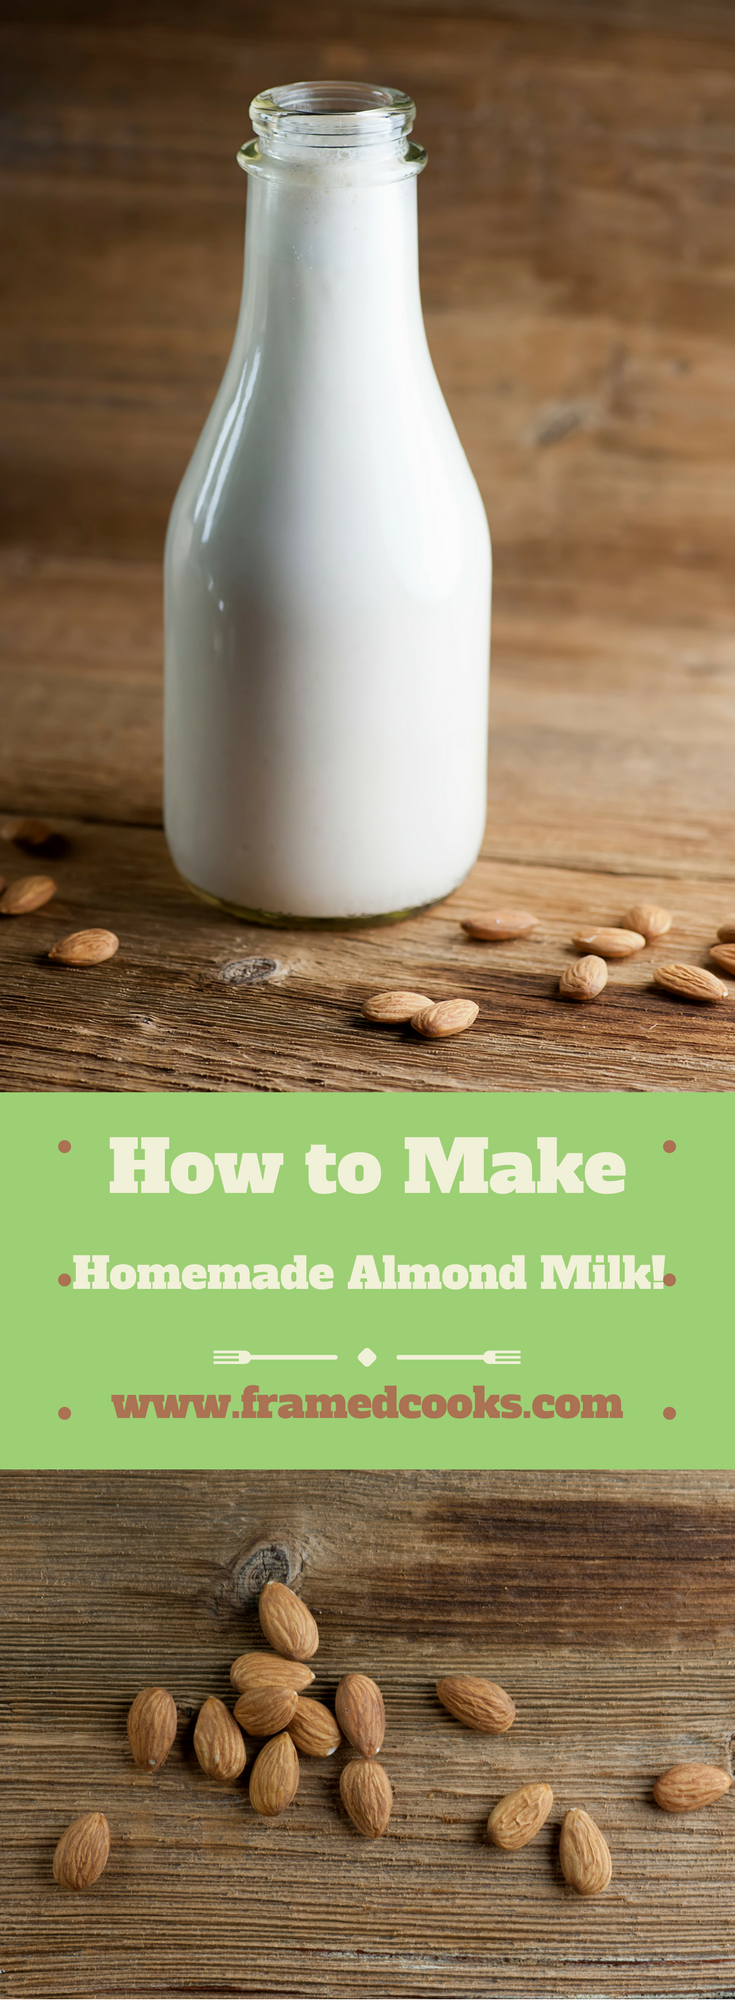 Making your own homemade almond milk is ridiculously easy with this simple recipe!